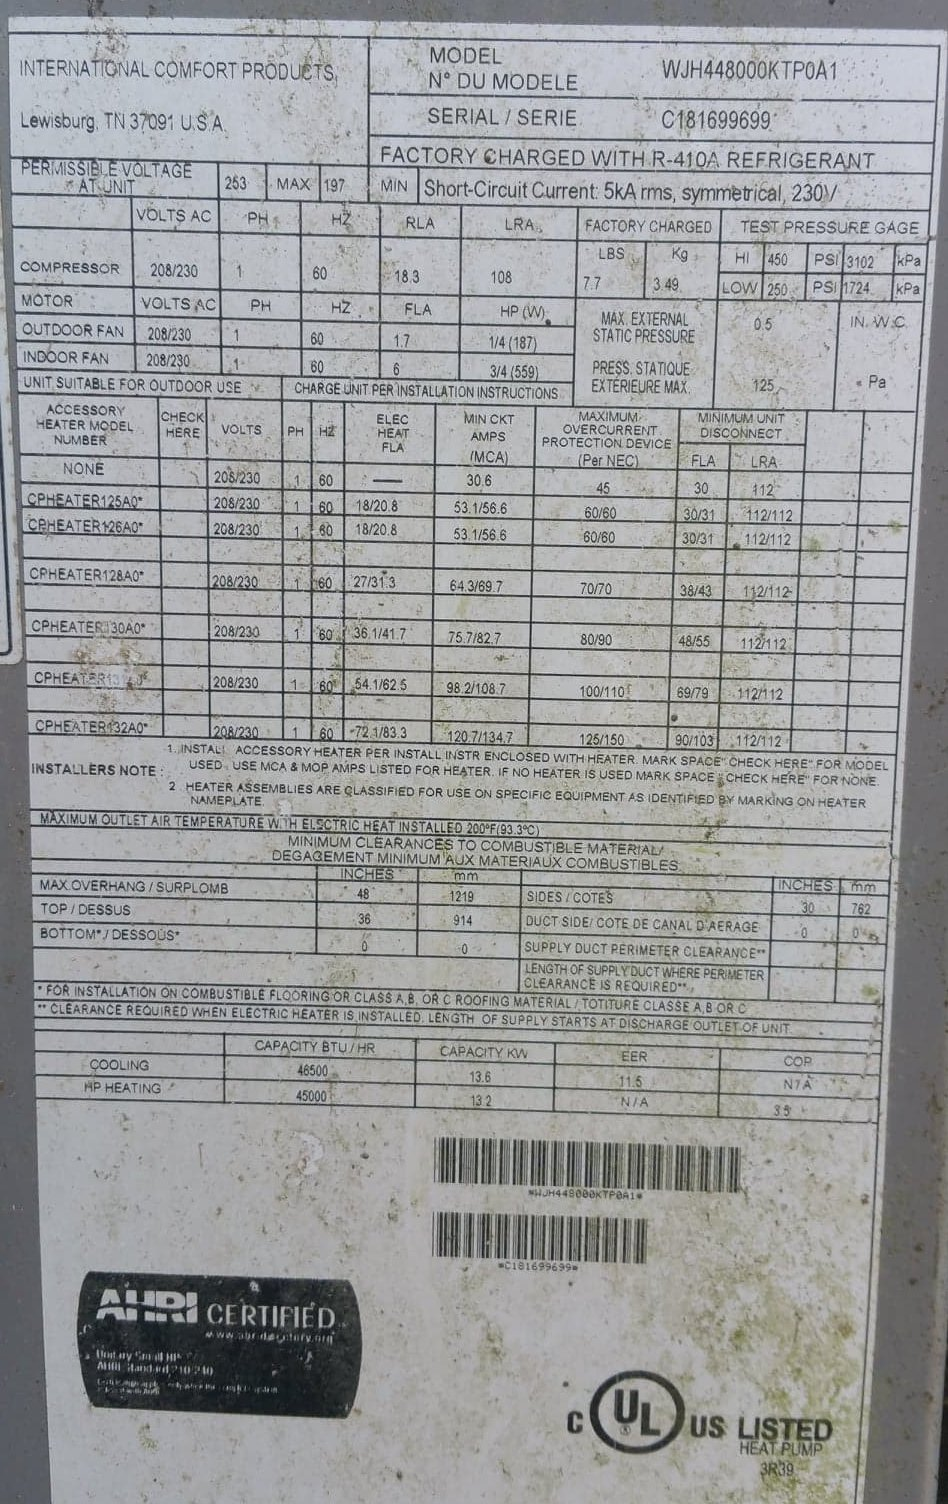 AC Unit WJH44800KTP0A1 Blows Air, Neither Hot Nor Cold-ac-1.jpg